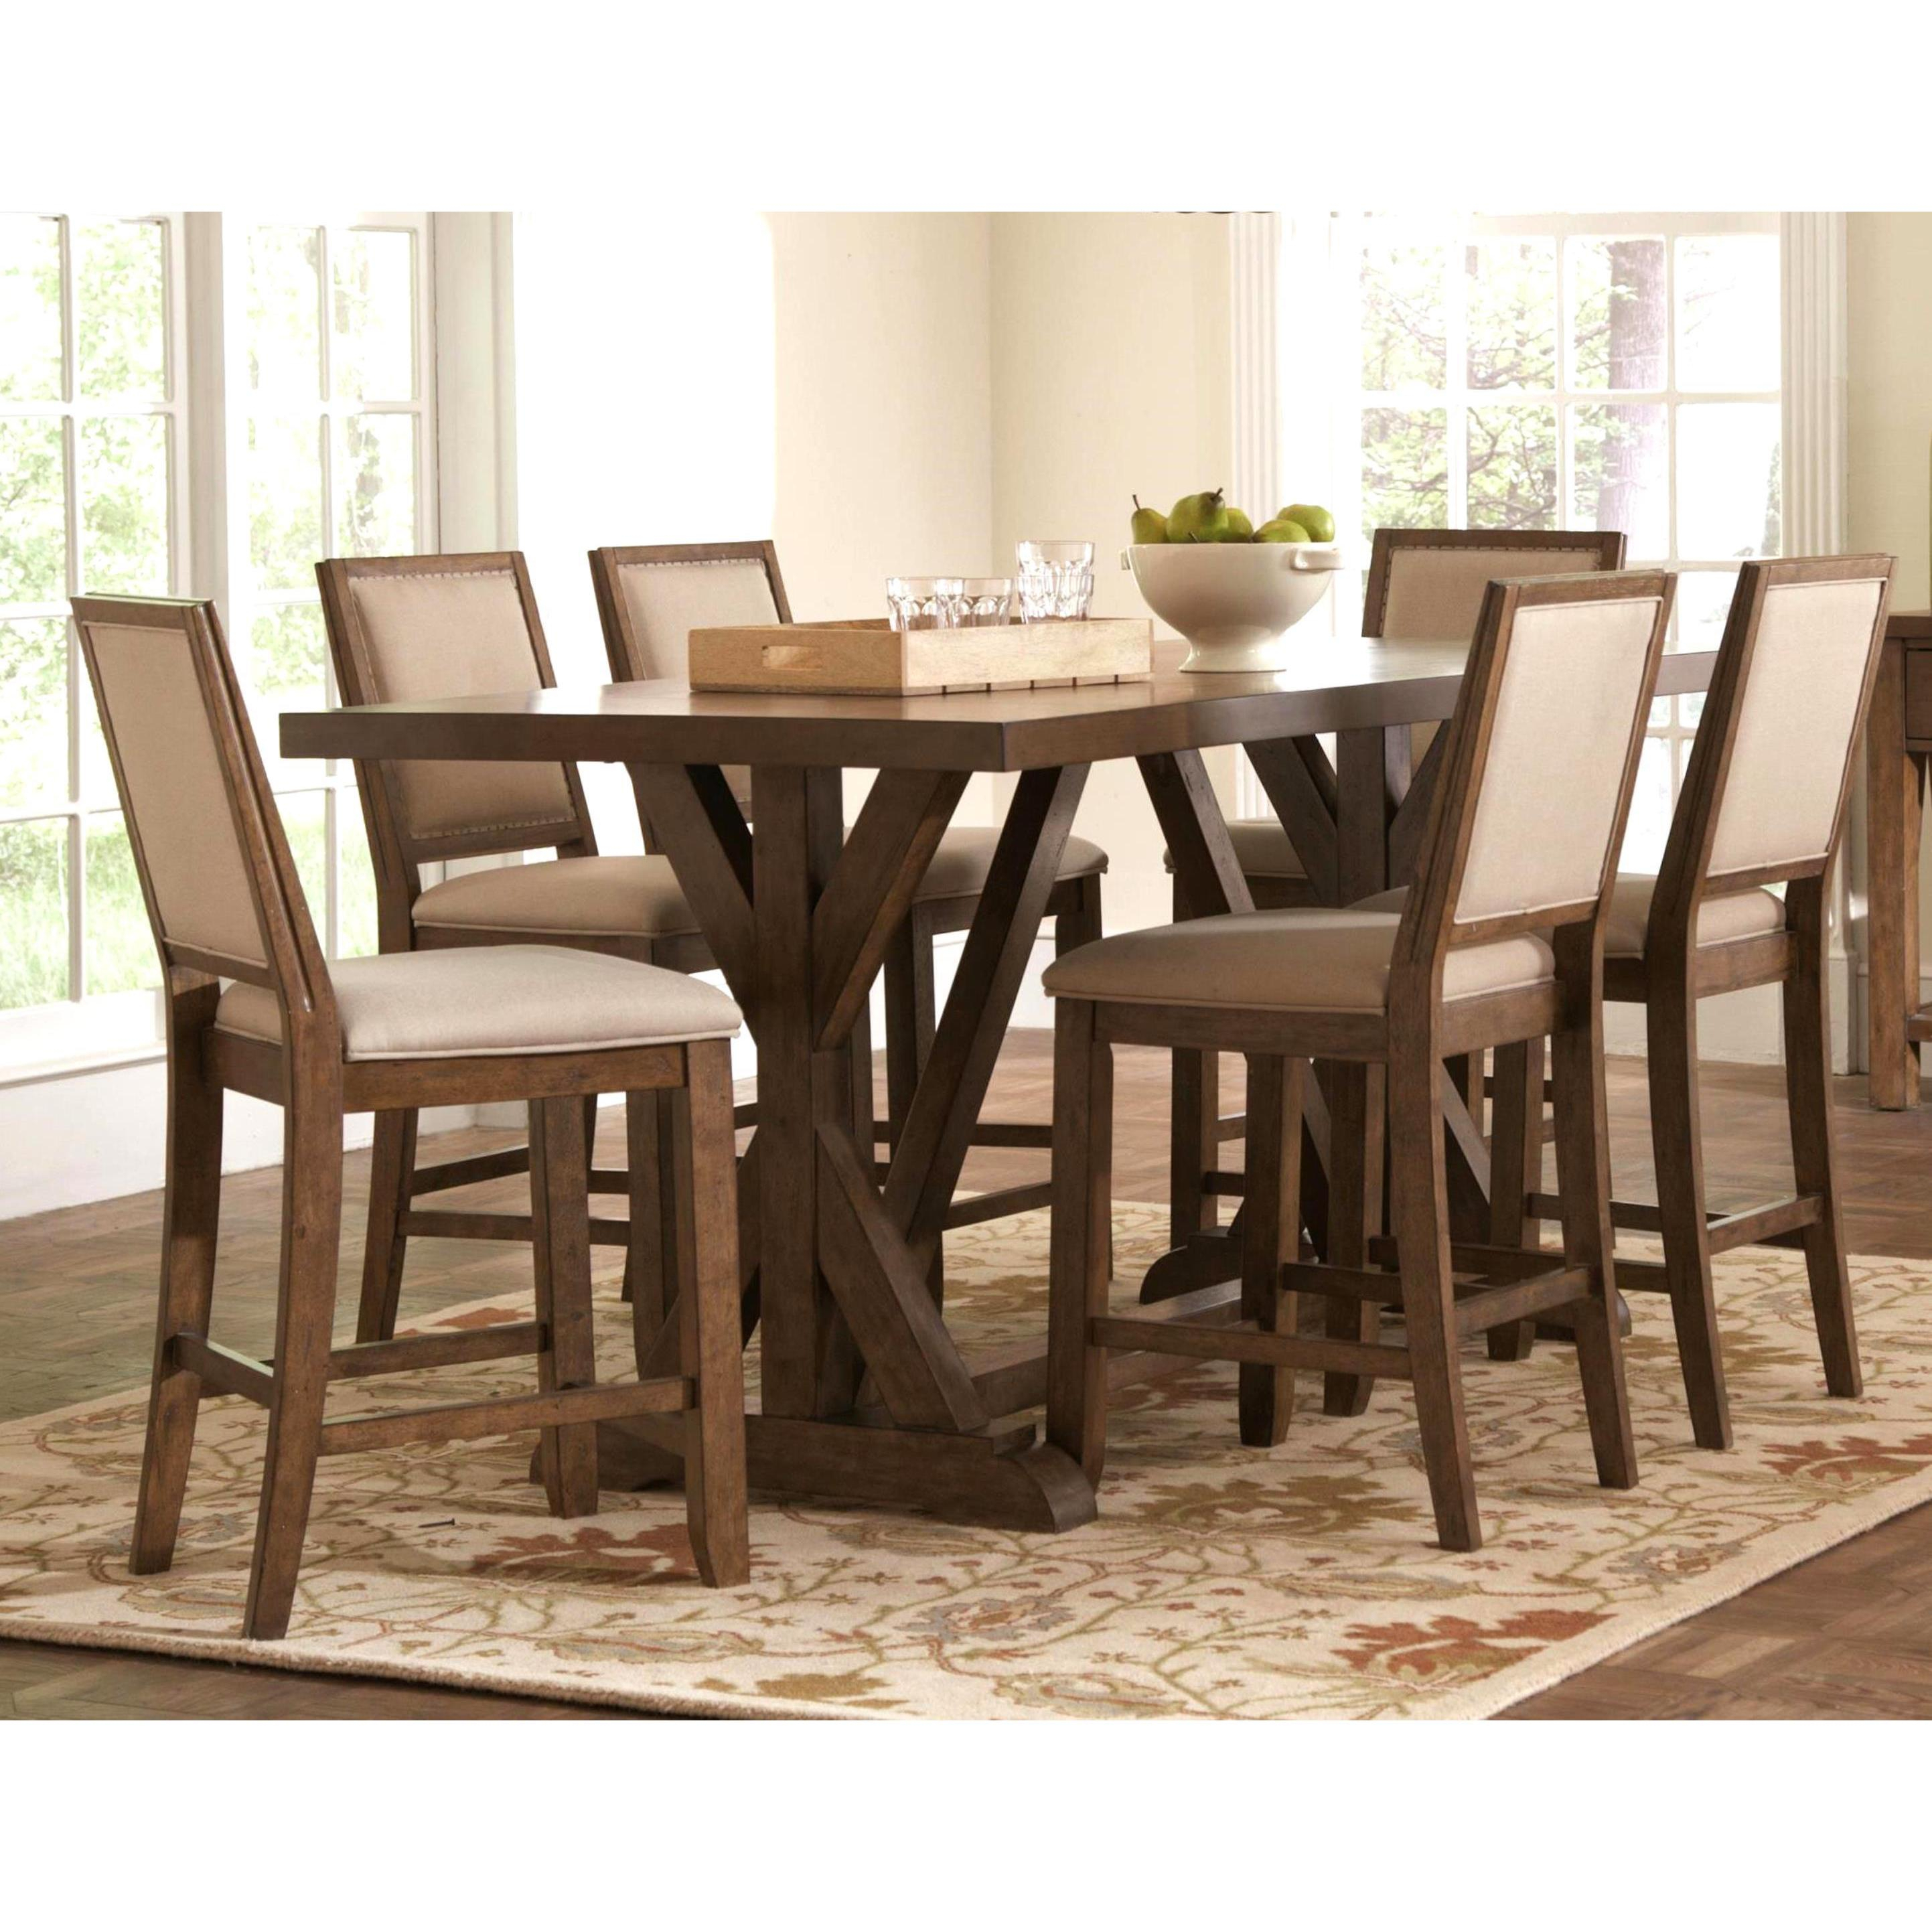 Sontuoso Rustic Trestle Base European Design Counter Height 7 Piece Dining  Set With 2018 Wallflower 3 Piece Dining Sets (Image 16 of 20)